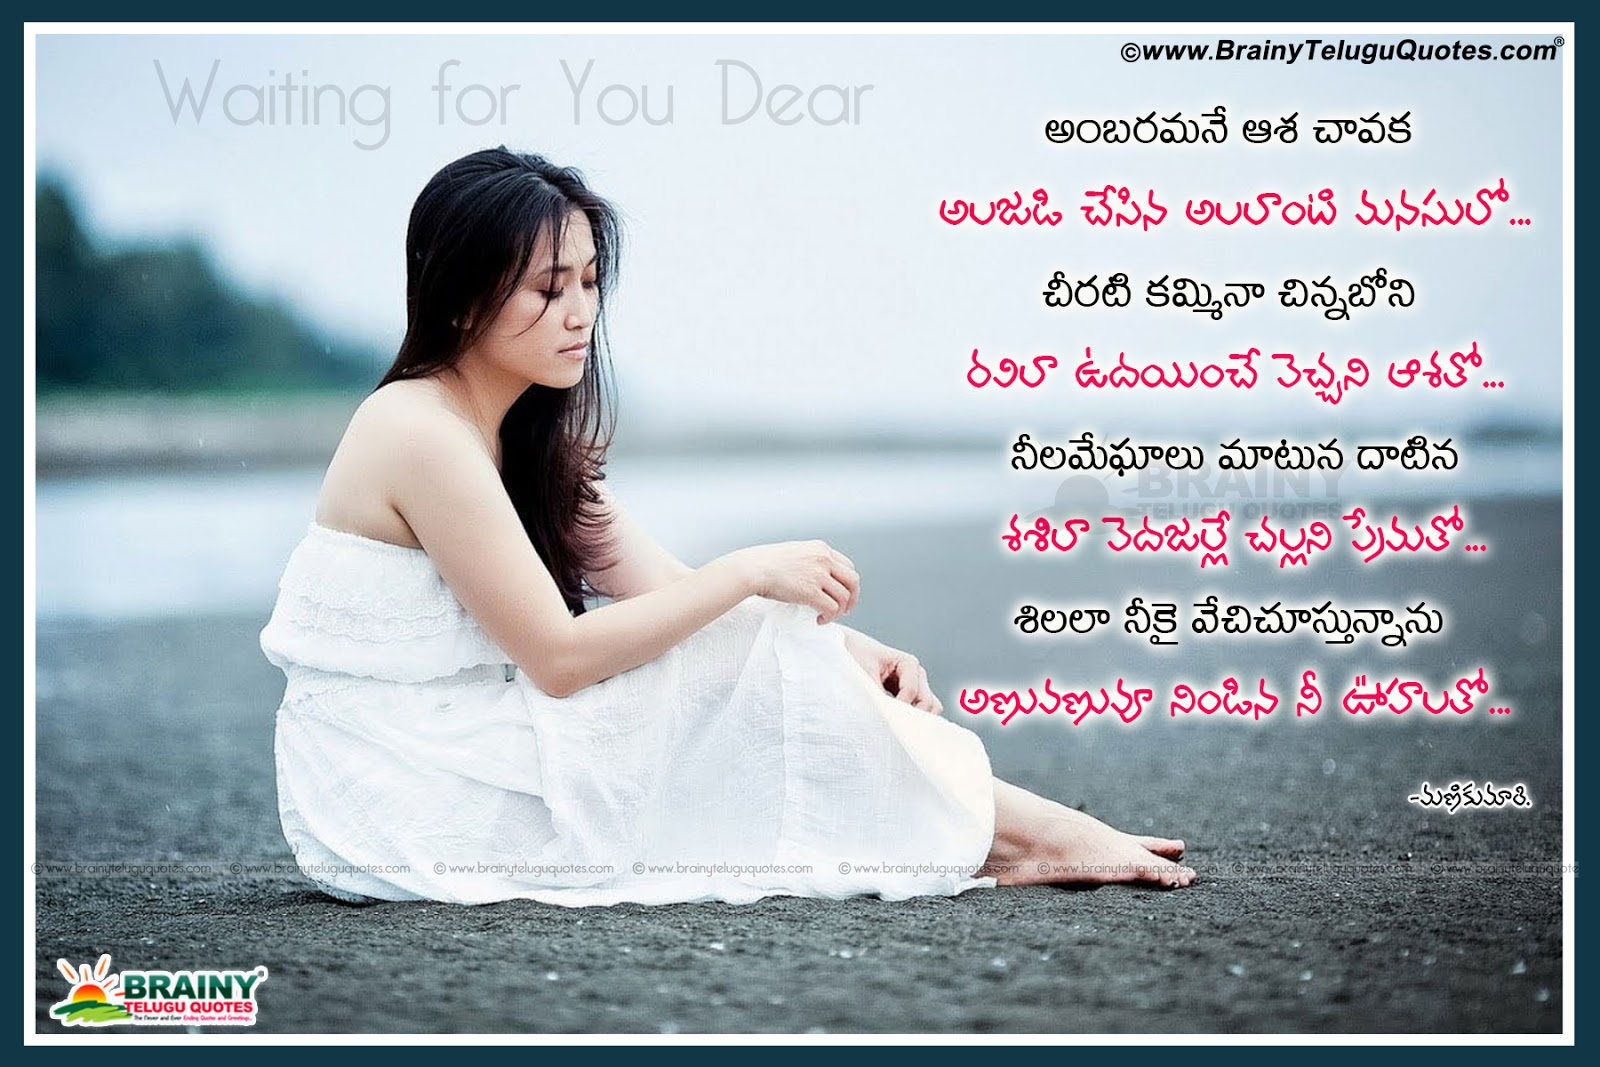 Miss U Love Quotes In Telugu : ... Telugu Latest miss You my Love Quotes images, i miss you telugu quotes